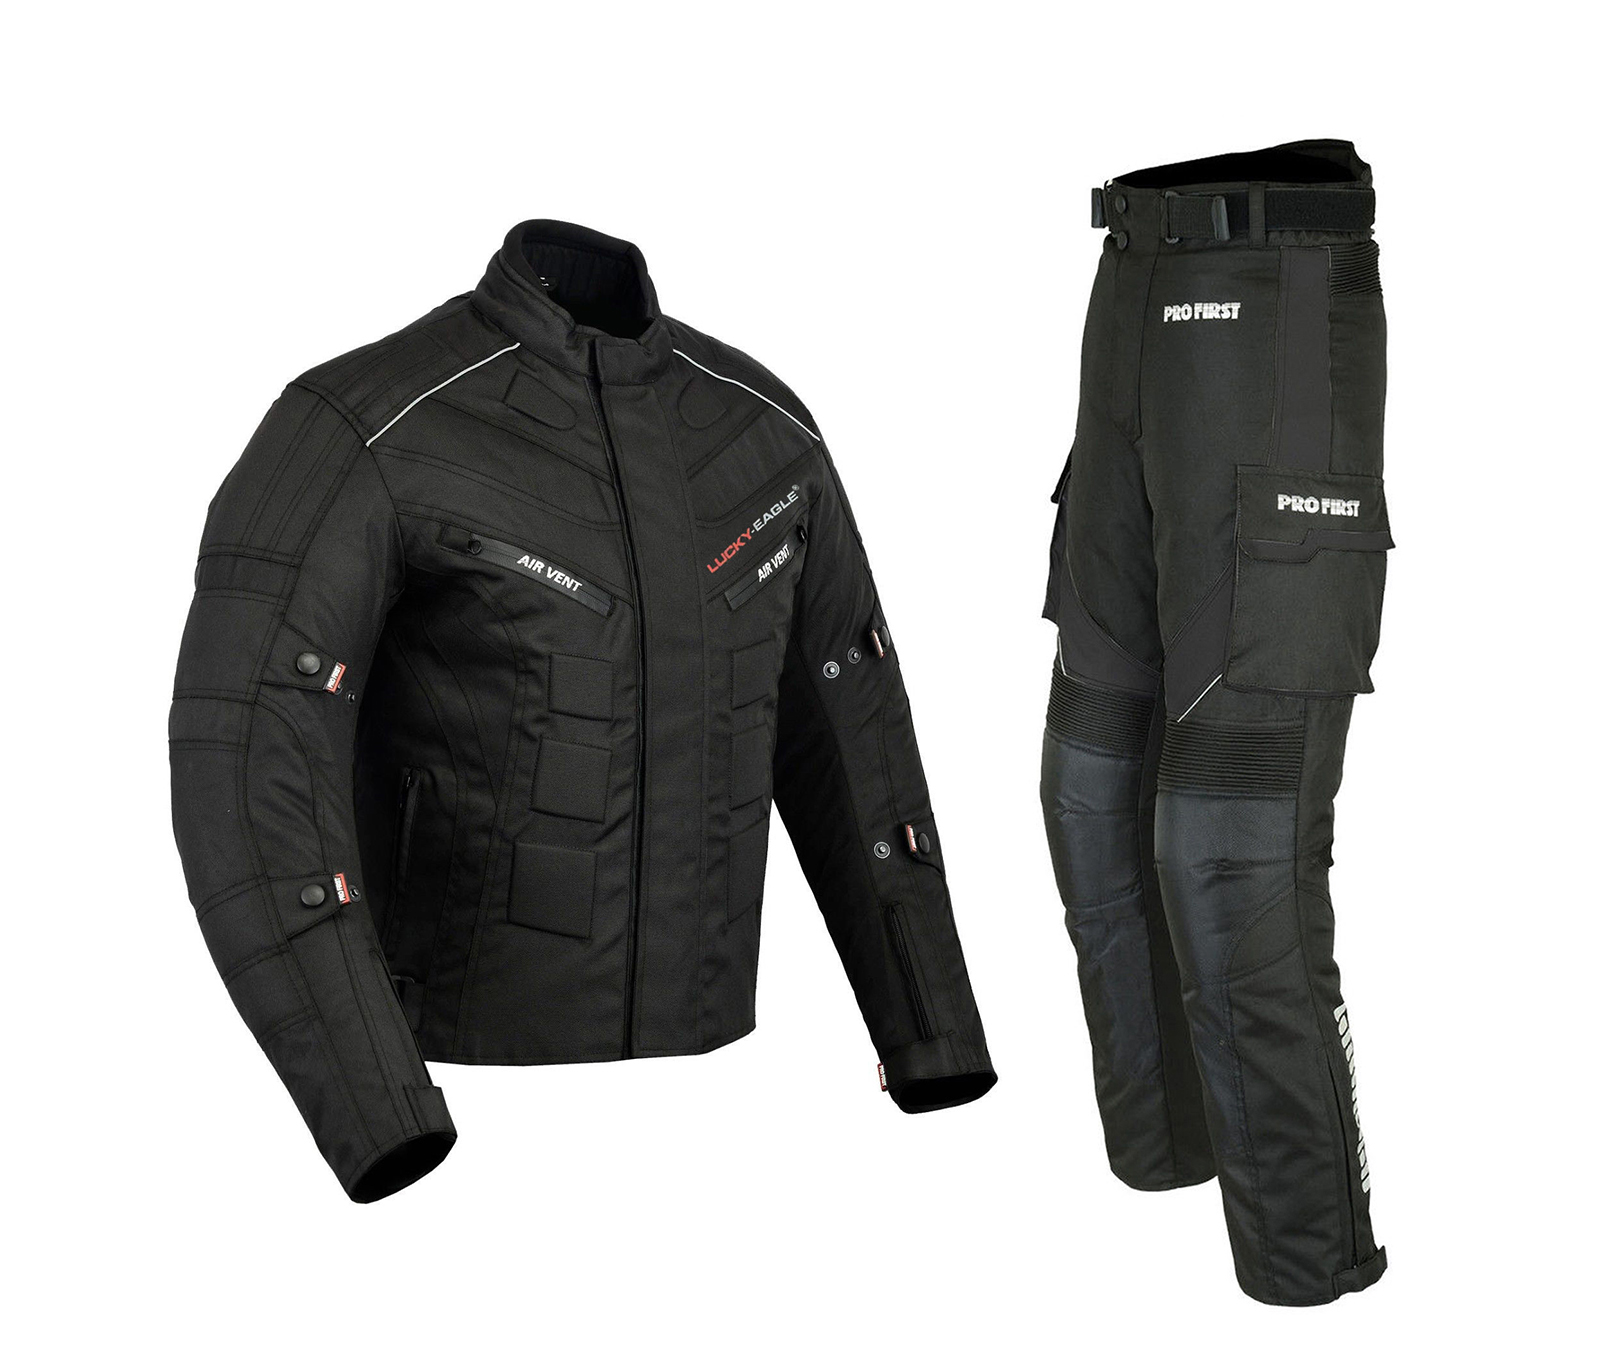 Black /& Green, Medium JKT-007 6 Packs Design Most Popular Waterproof Motorbike Motorcycle Jacket in Cordura Fabric and CE Approved Armour